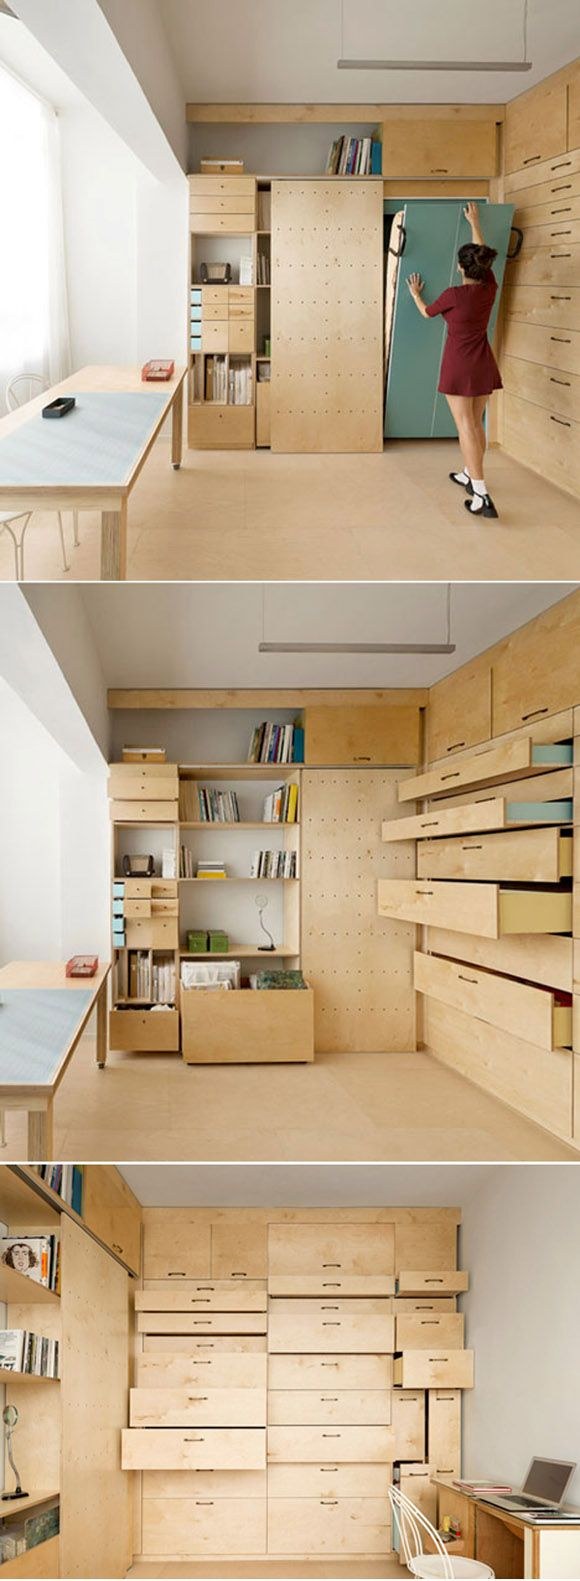 Architect Ranaan Stern turned a 15-square-metre room inside an apartment in Tel Aviv into a full artist's studio with two desks, 36 drawers, modular storage compartments, pegboard display walls and even a folding bed.